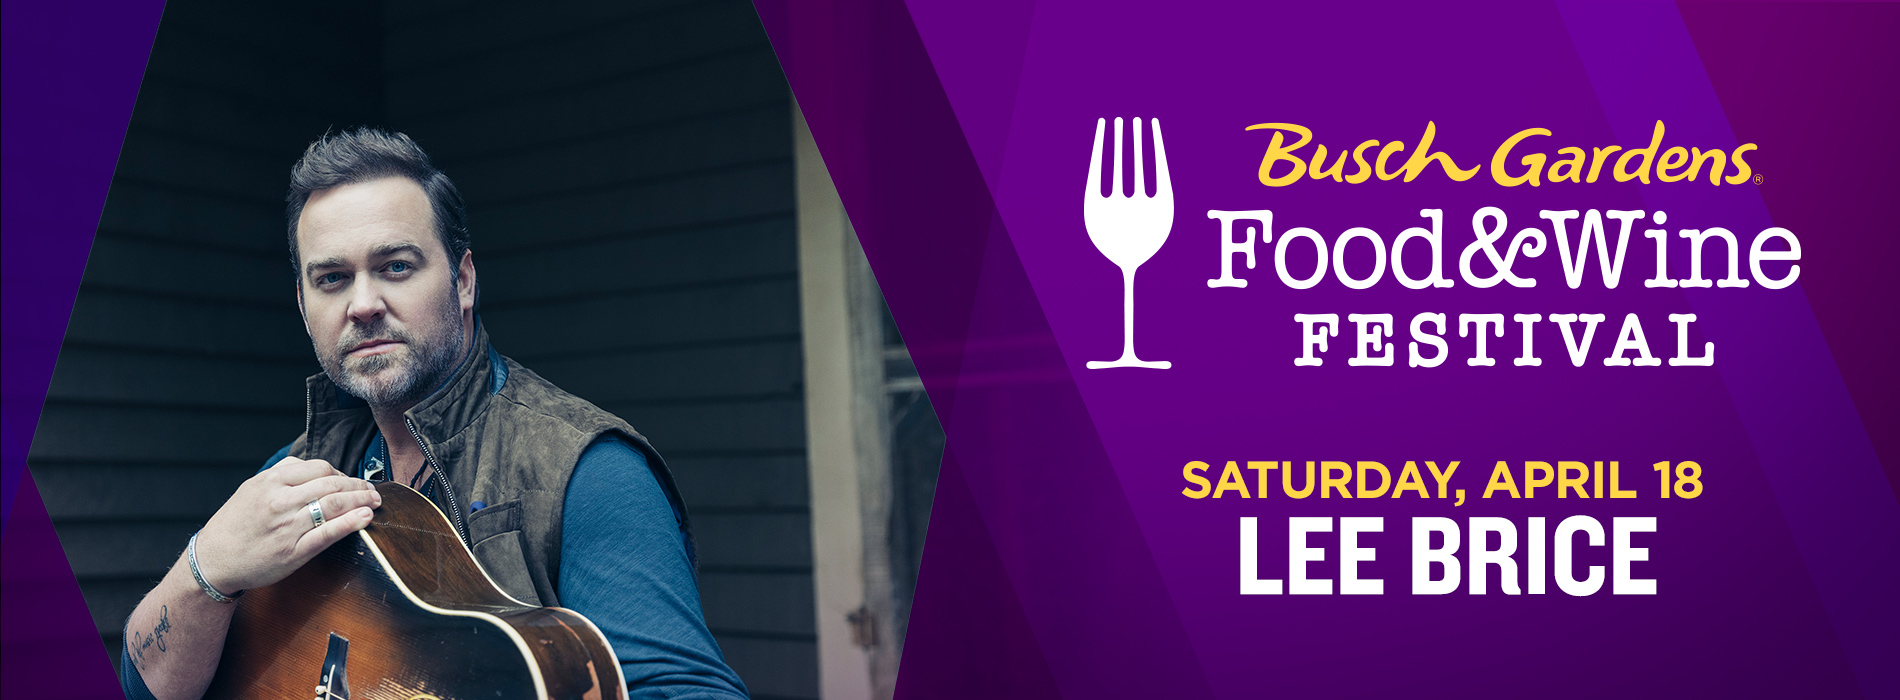 Lee Brice at Busch Gardens Tampa Bay on Saturday, April 18 for the Food and Wine Festival